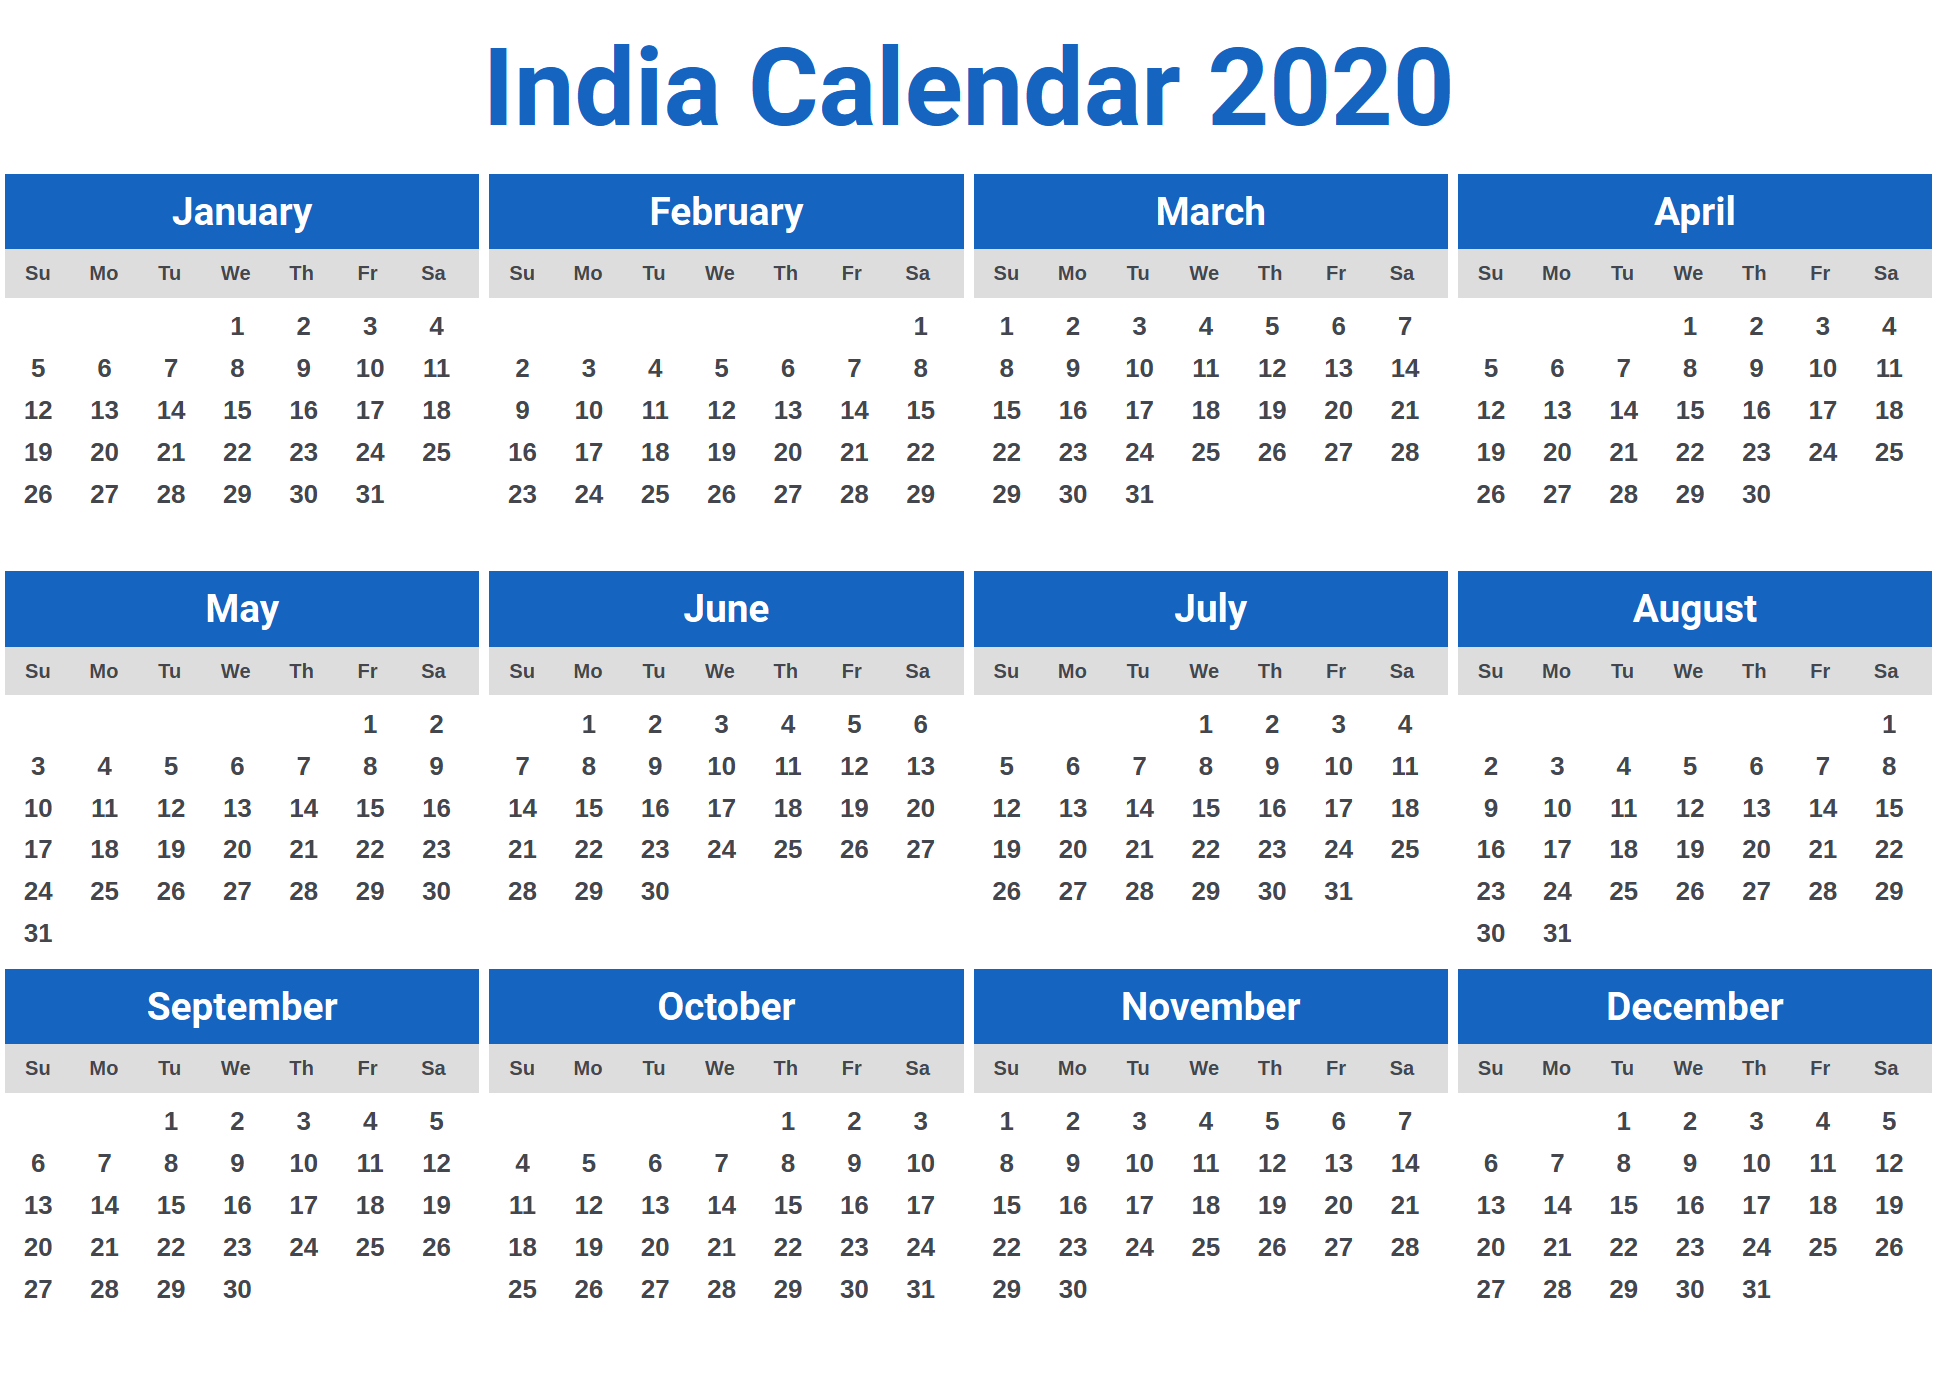 Calendar 2020 India Download Image for India Calendar 2020 | Download | Calendar 2020, Calendar